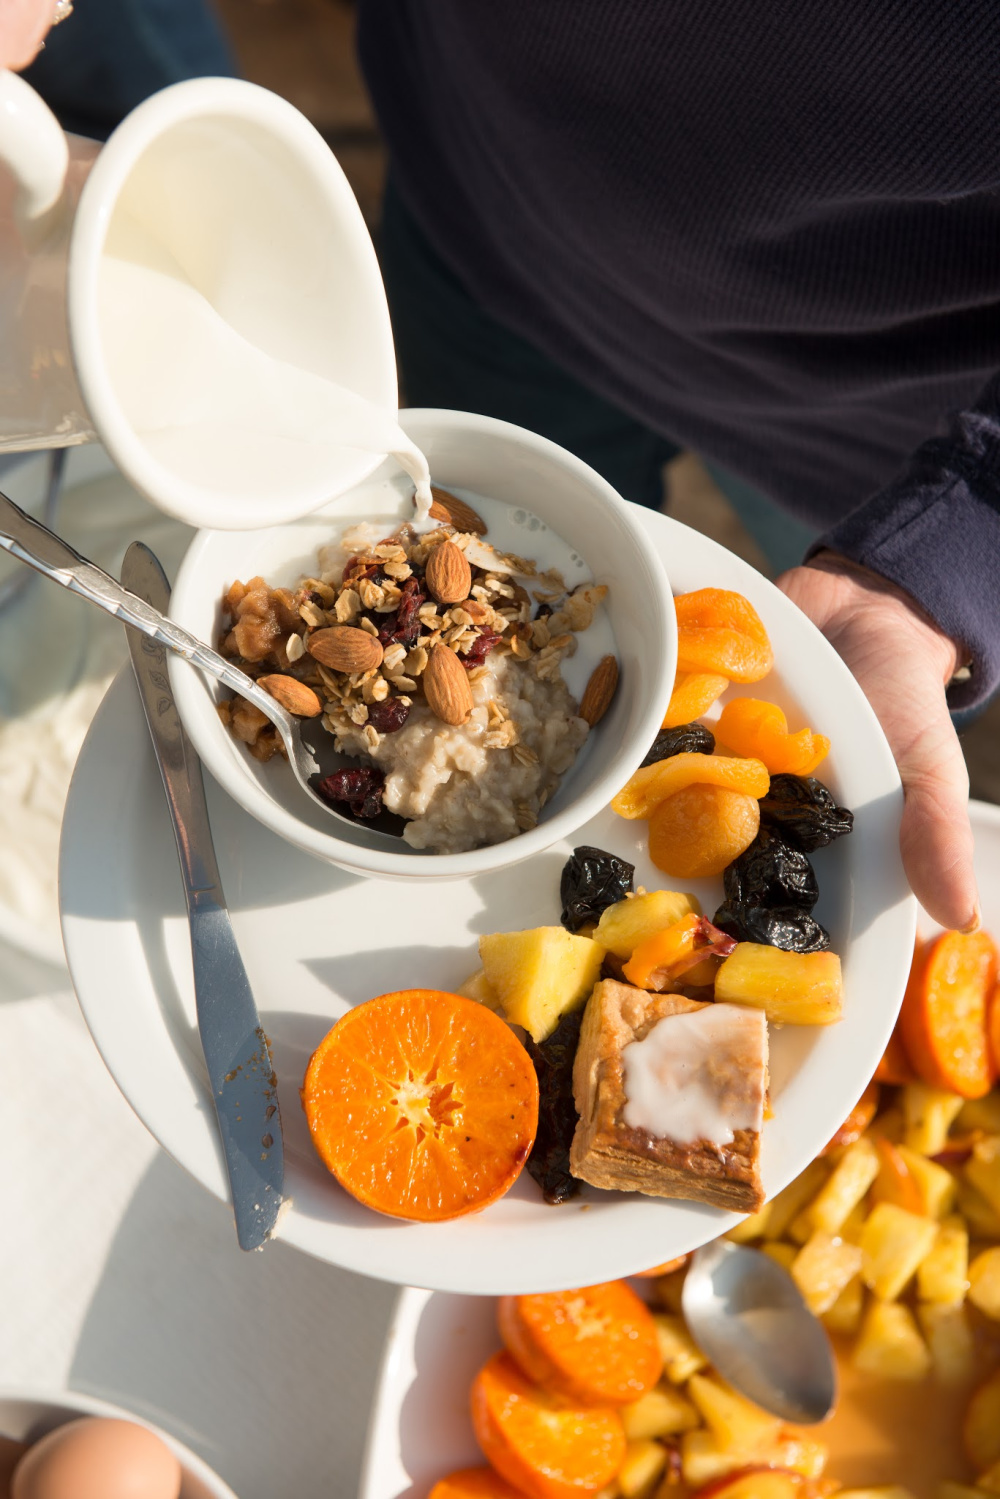 Oatmeal Breakfast with Dried Fruit Photo by Douglas Merriam